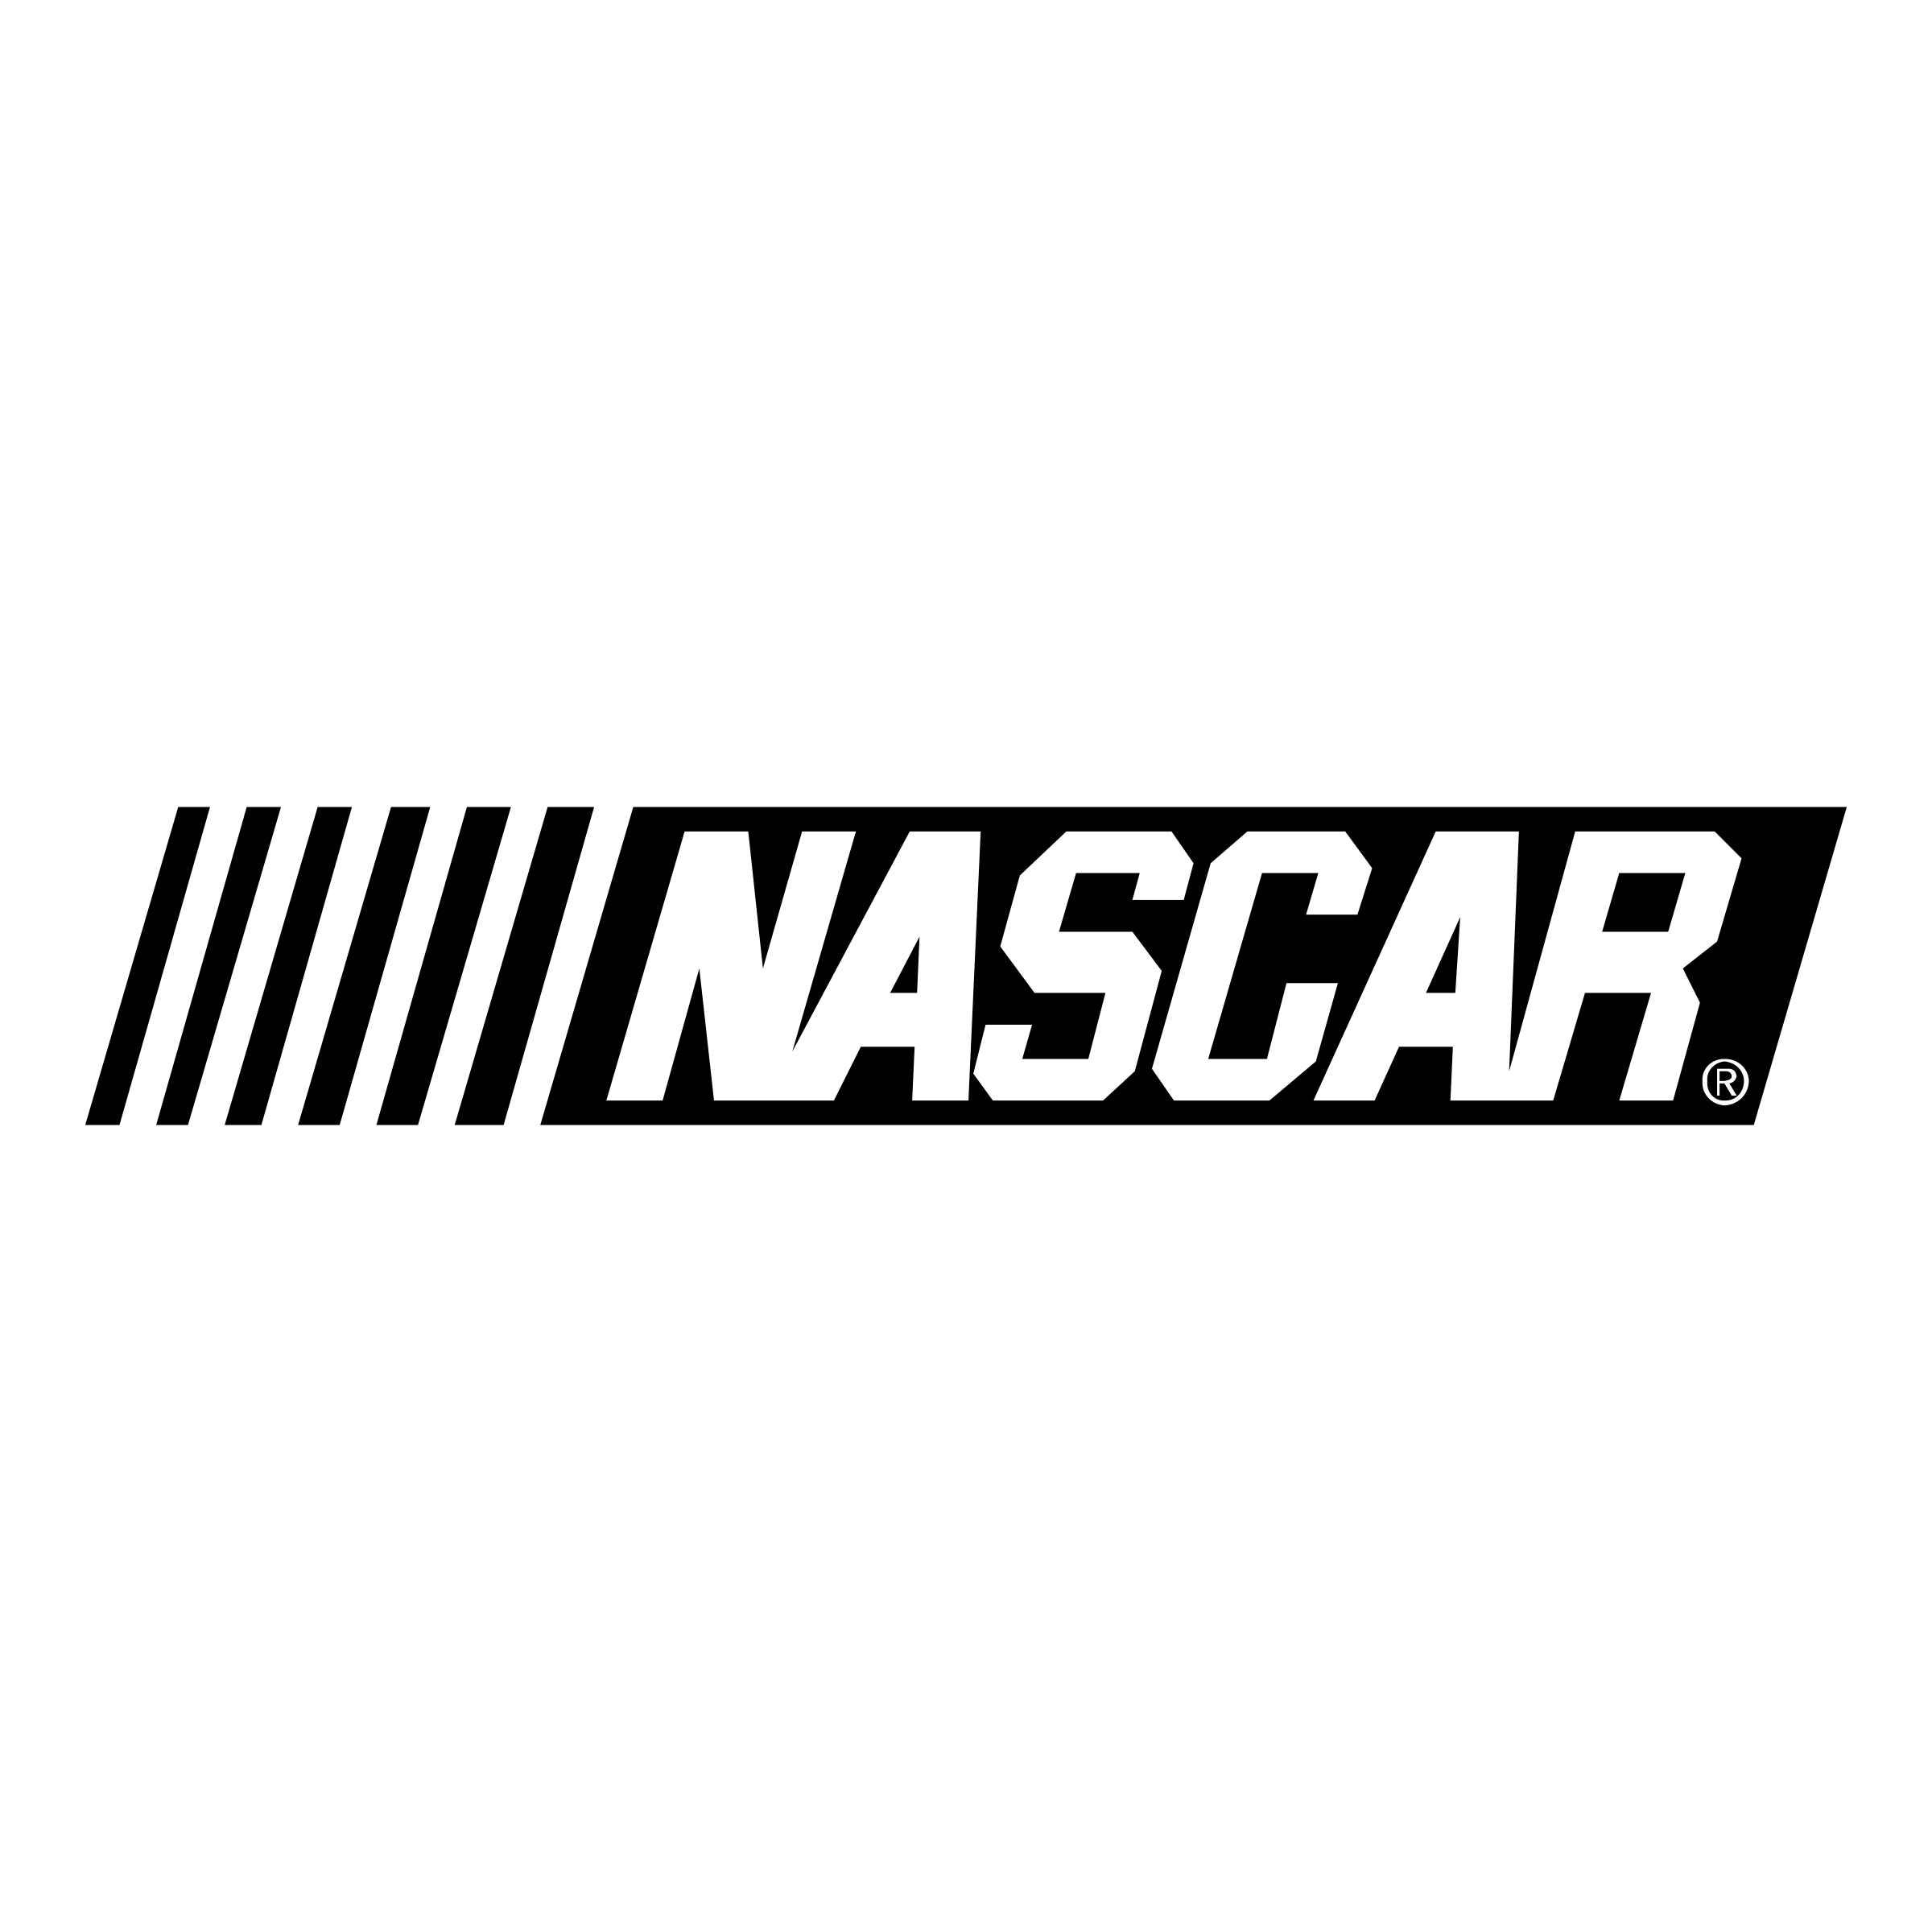 nascar logo png transparent svg vector freebie supply rh freebiesupply com nascar cup logo vector nascar logo vector download